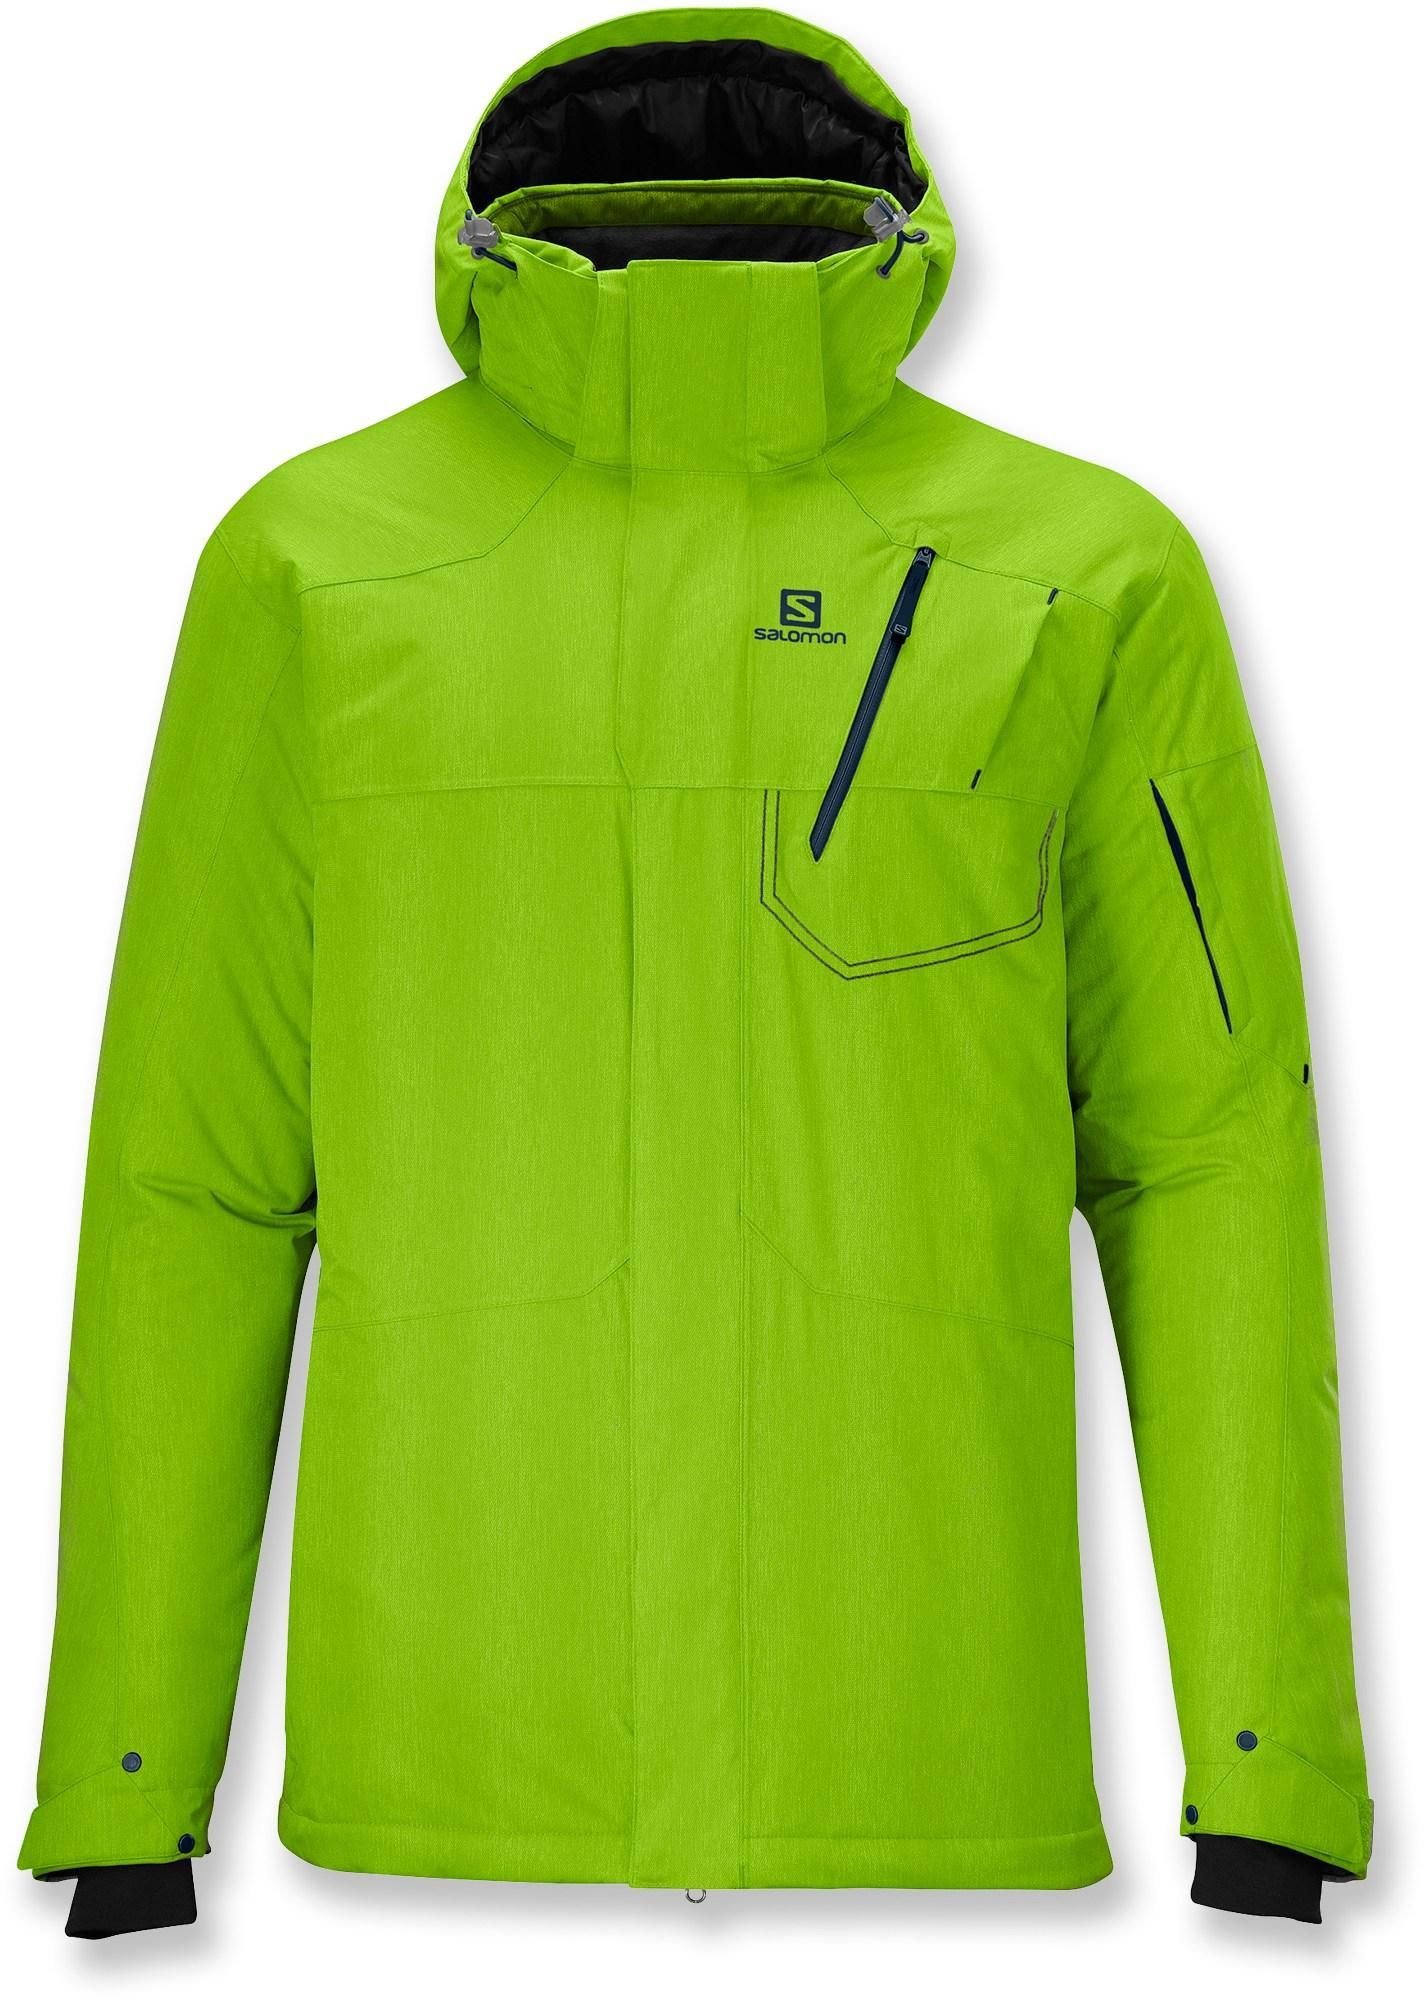 f2f26d0474 The fashionable Exposure Ski Suit from Salomon is designed to keep out the  weather while you play o…